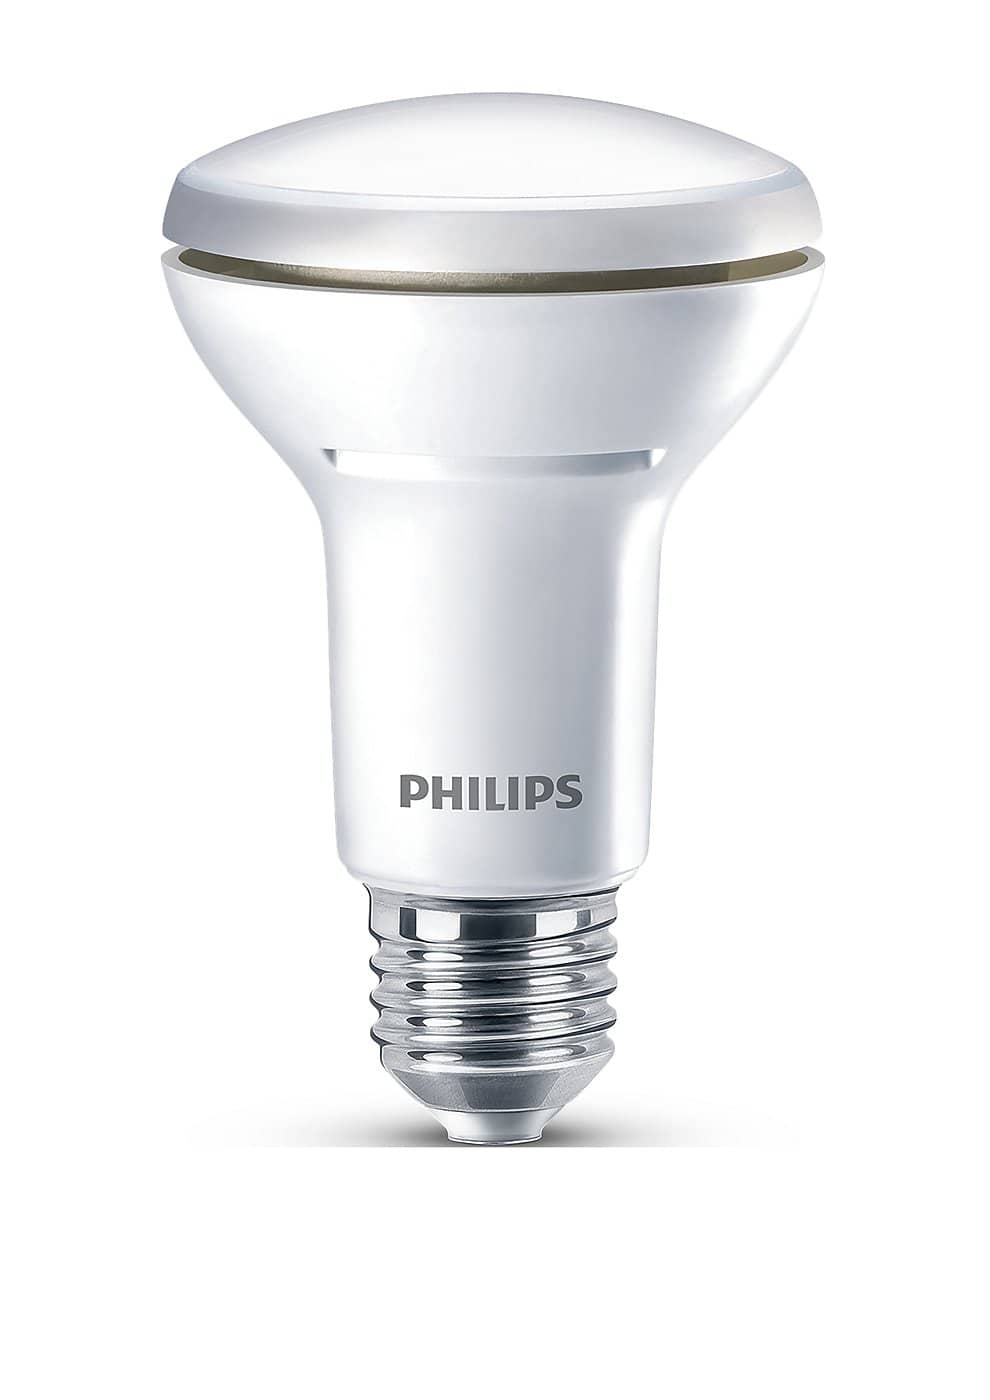 philips led emisor par20 5 7w 345lm warmweiss regulable. Black Bedroom Furniture Sets. Home Design Ideas